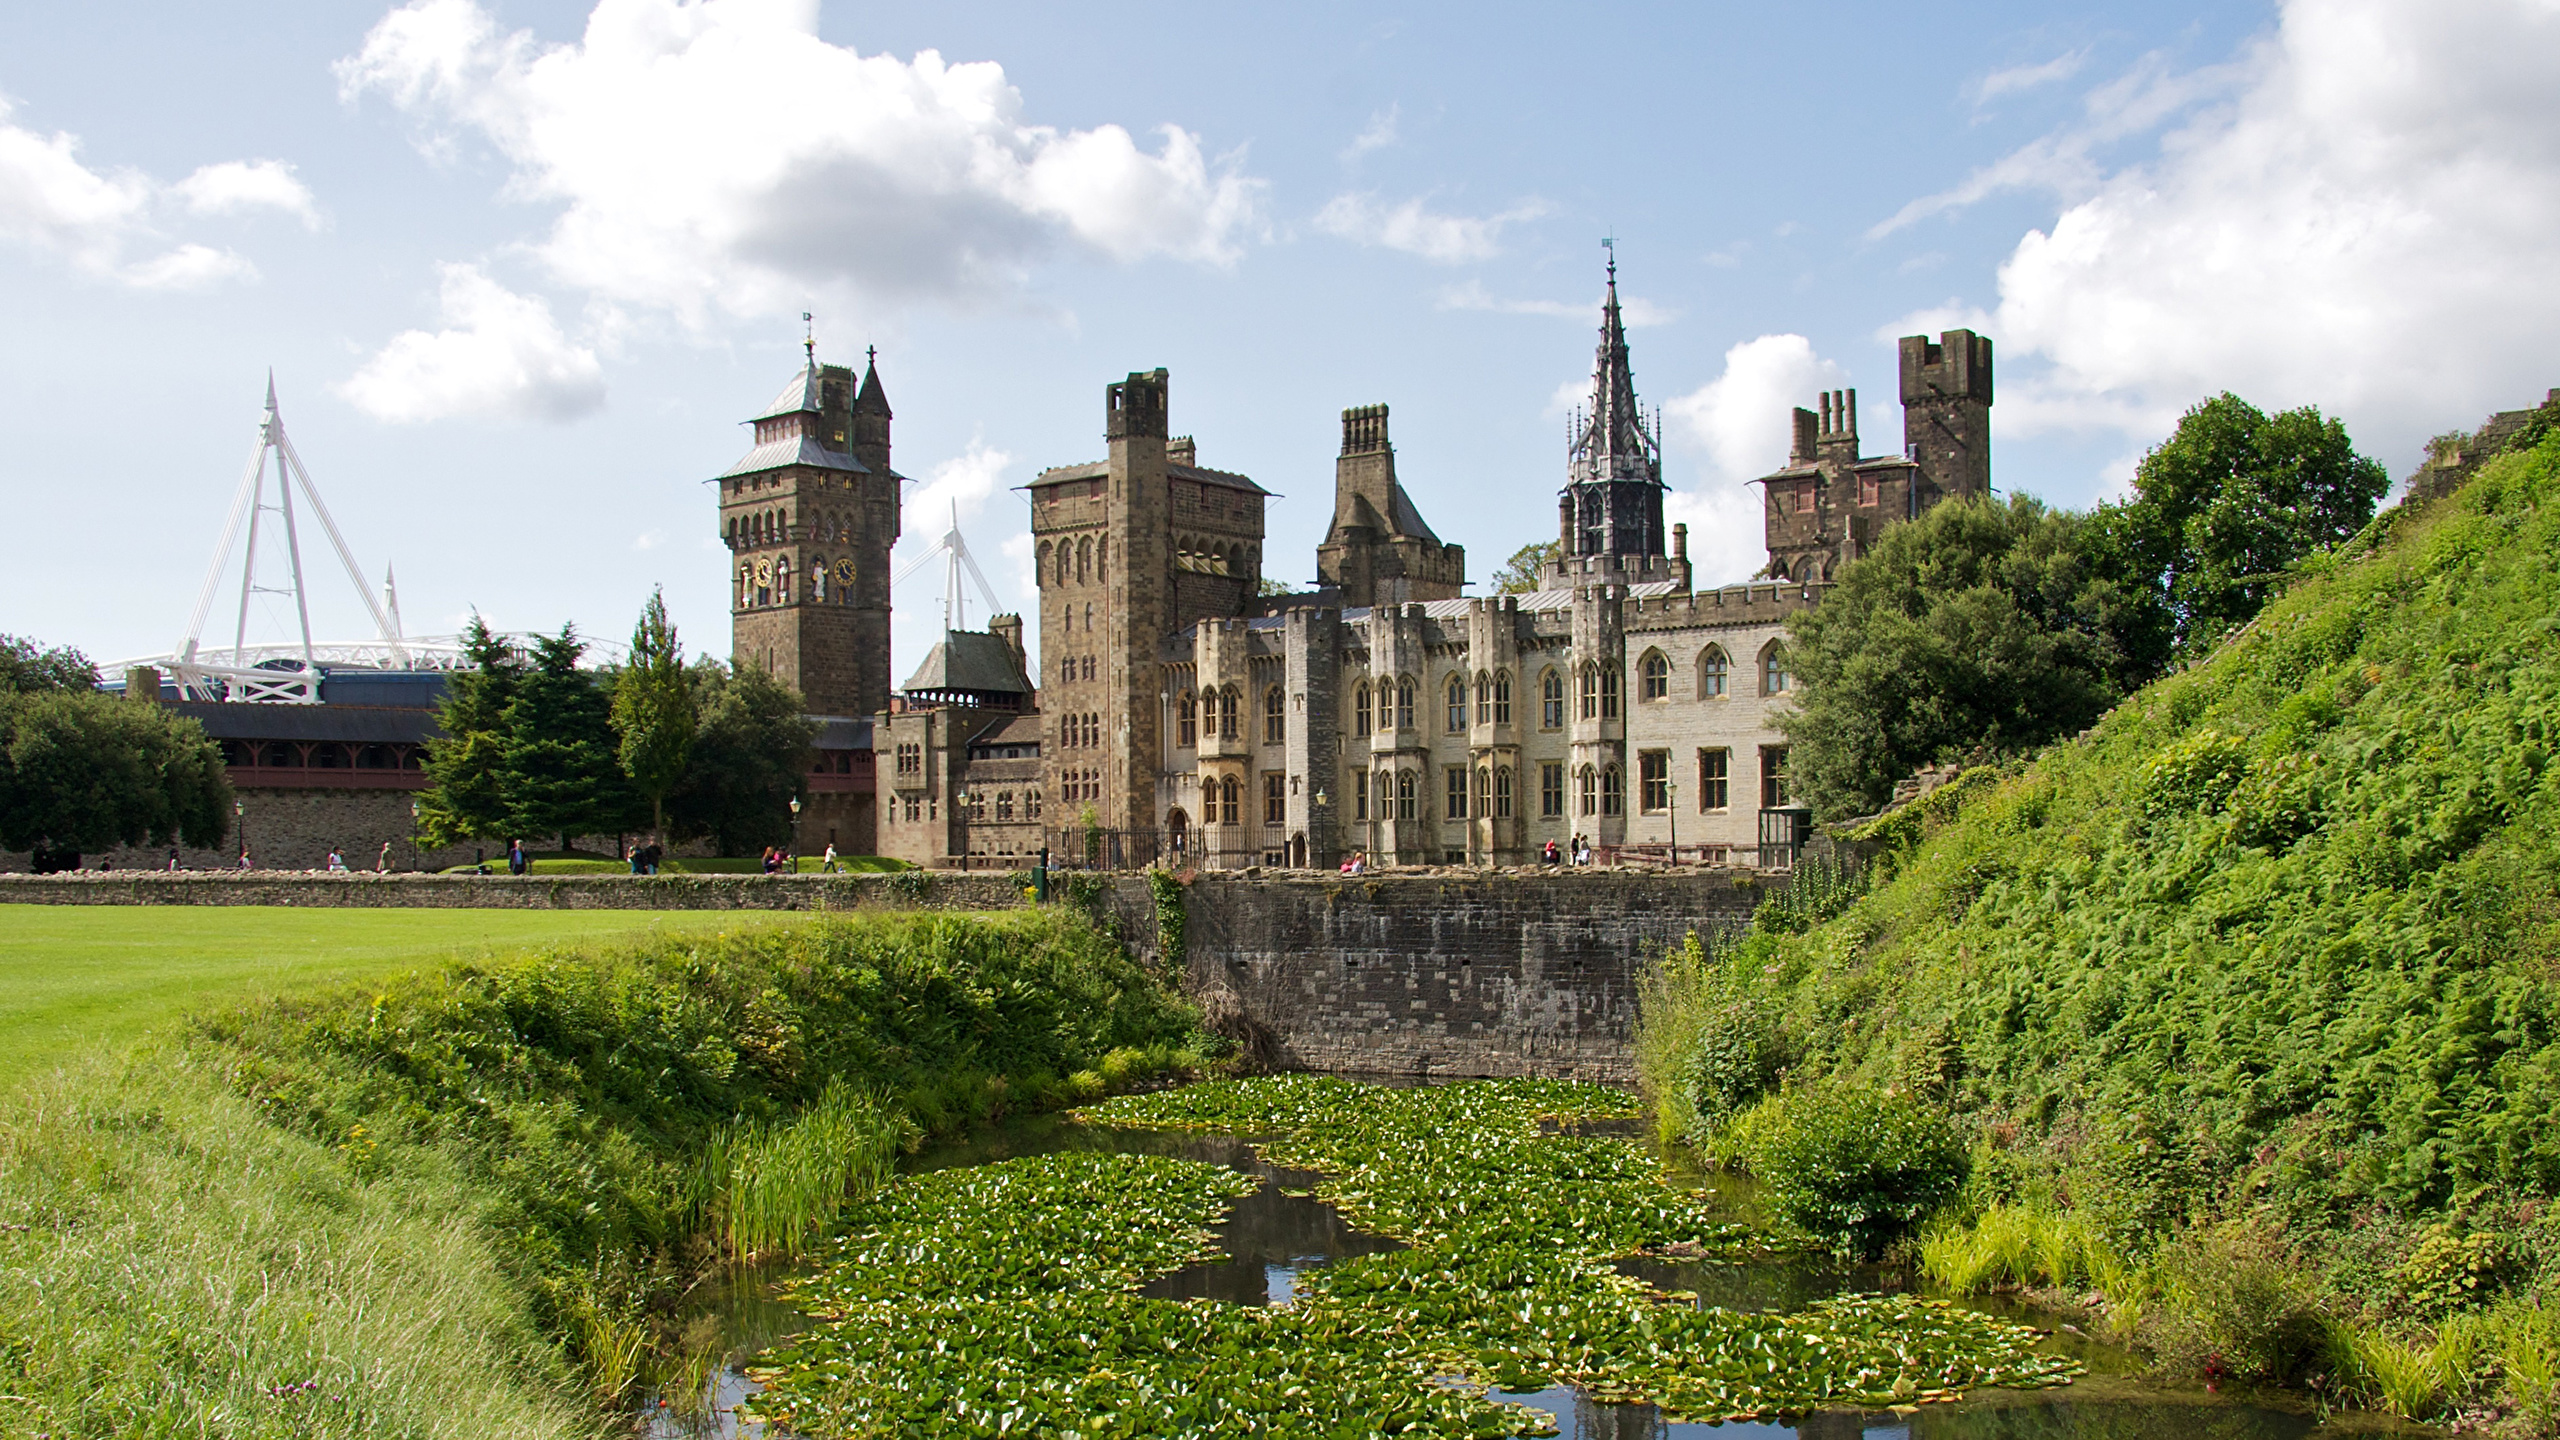 Images United Kingdom Cardiff Castle Castles Pond Cities 2560x1440 2560x1440